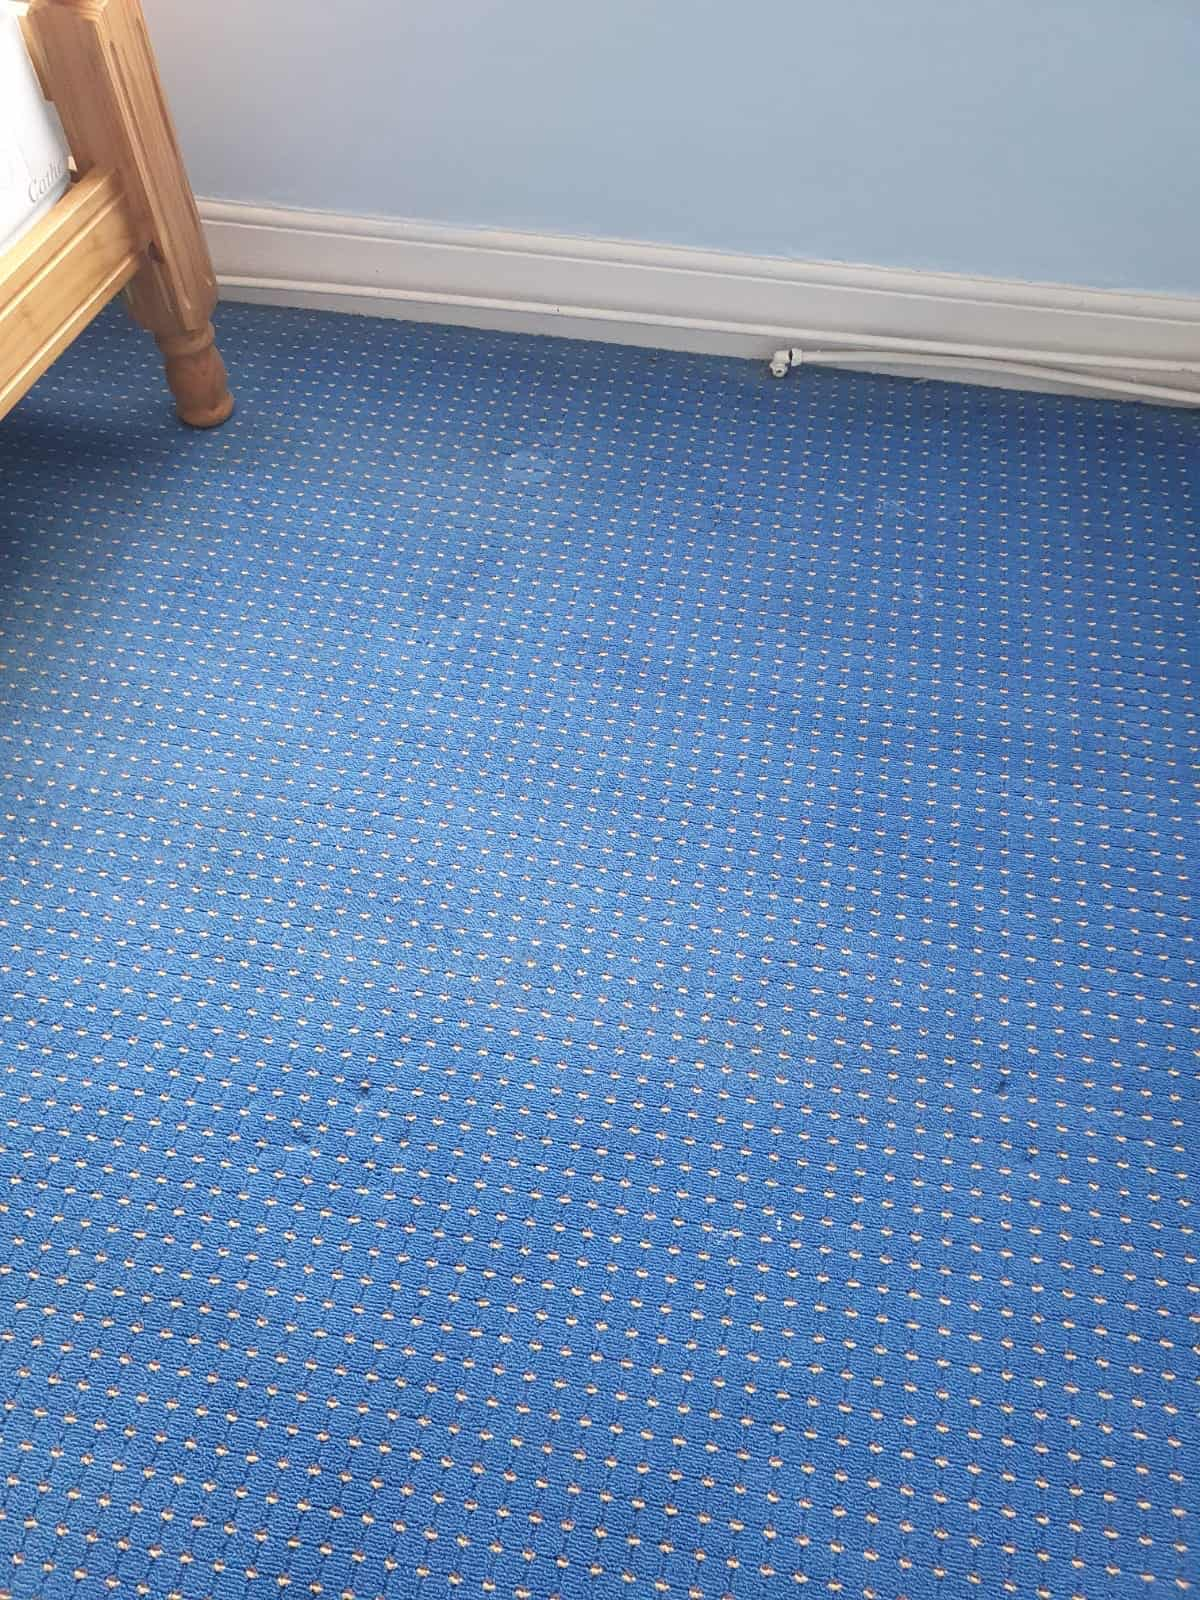 An after image of domestic carpets which have had a carpet cleaning service